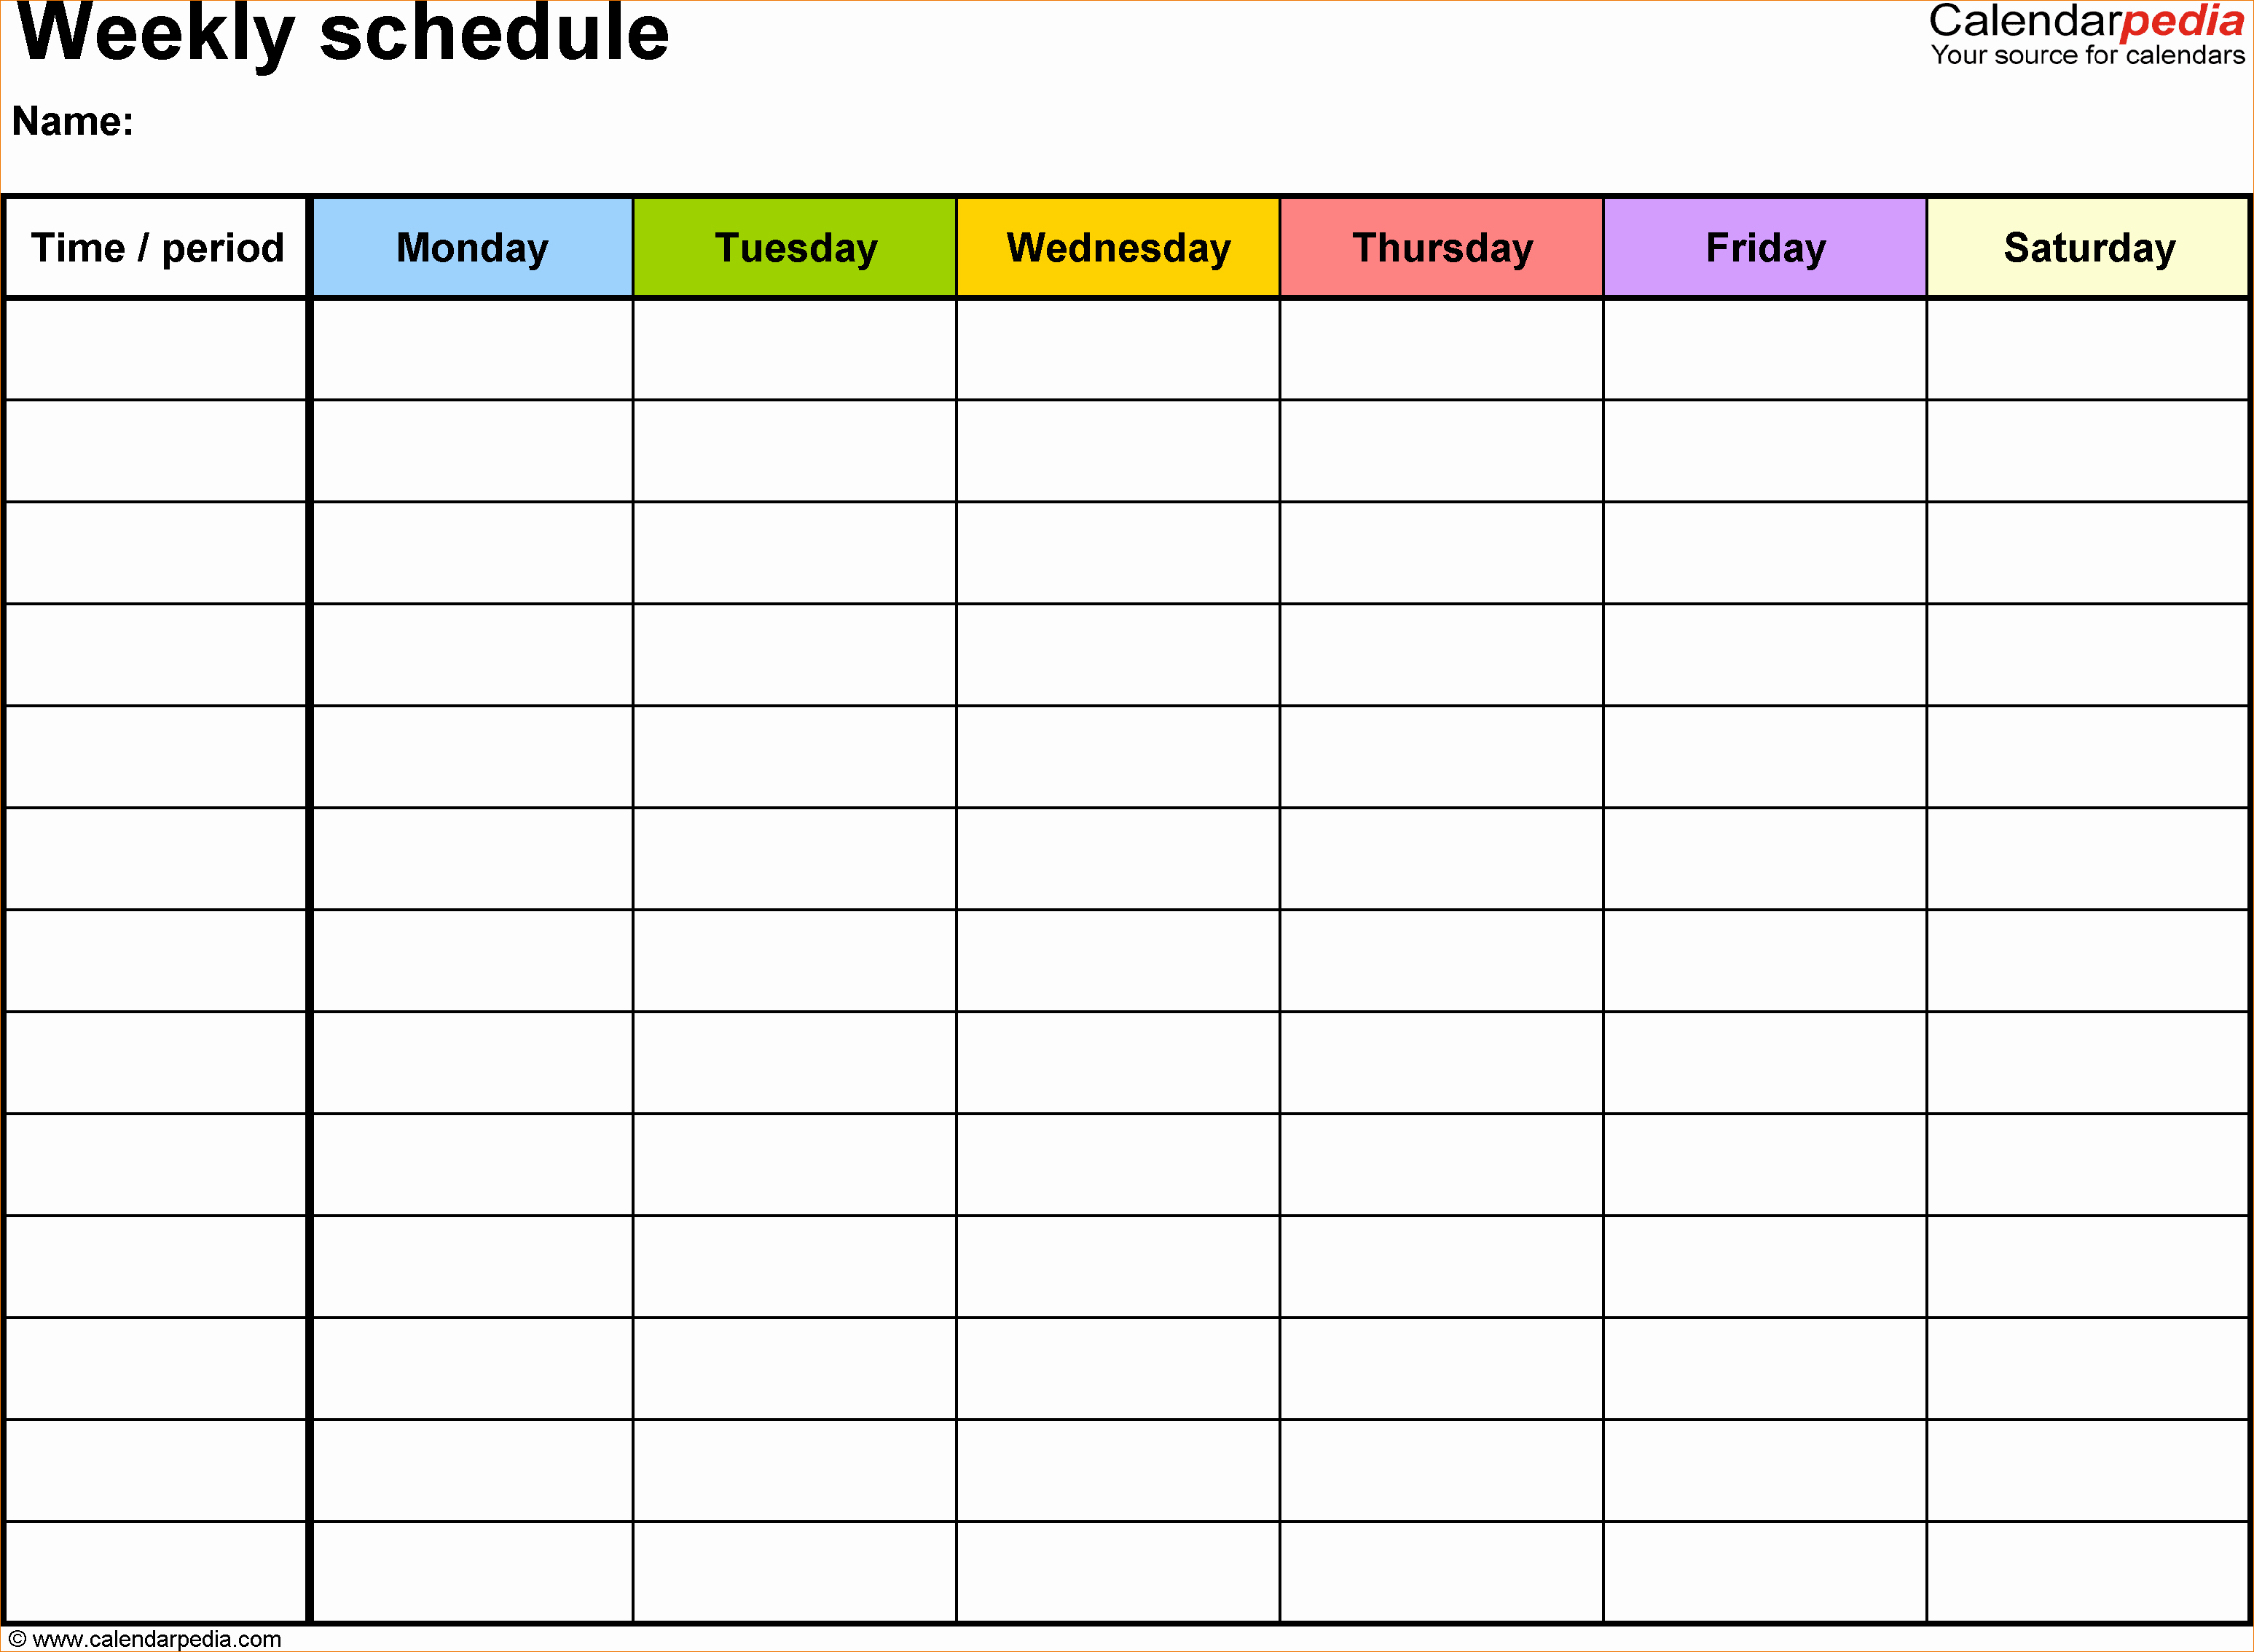 Daily Schedule Template Pdf Elegant 6 Daily Schedule Template Pdf